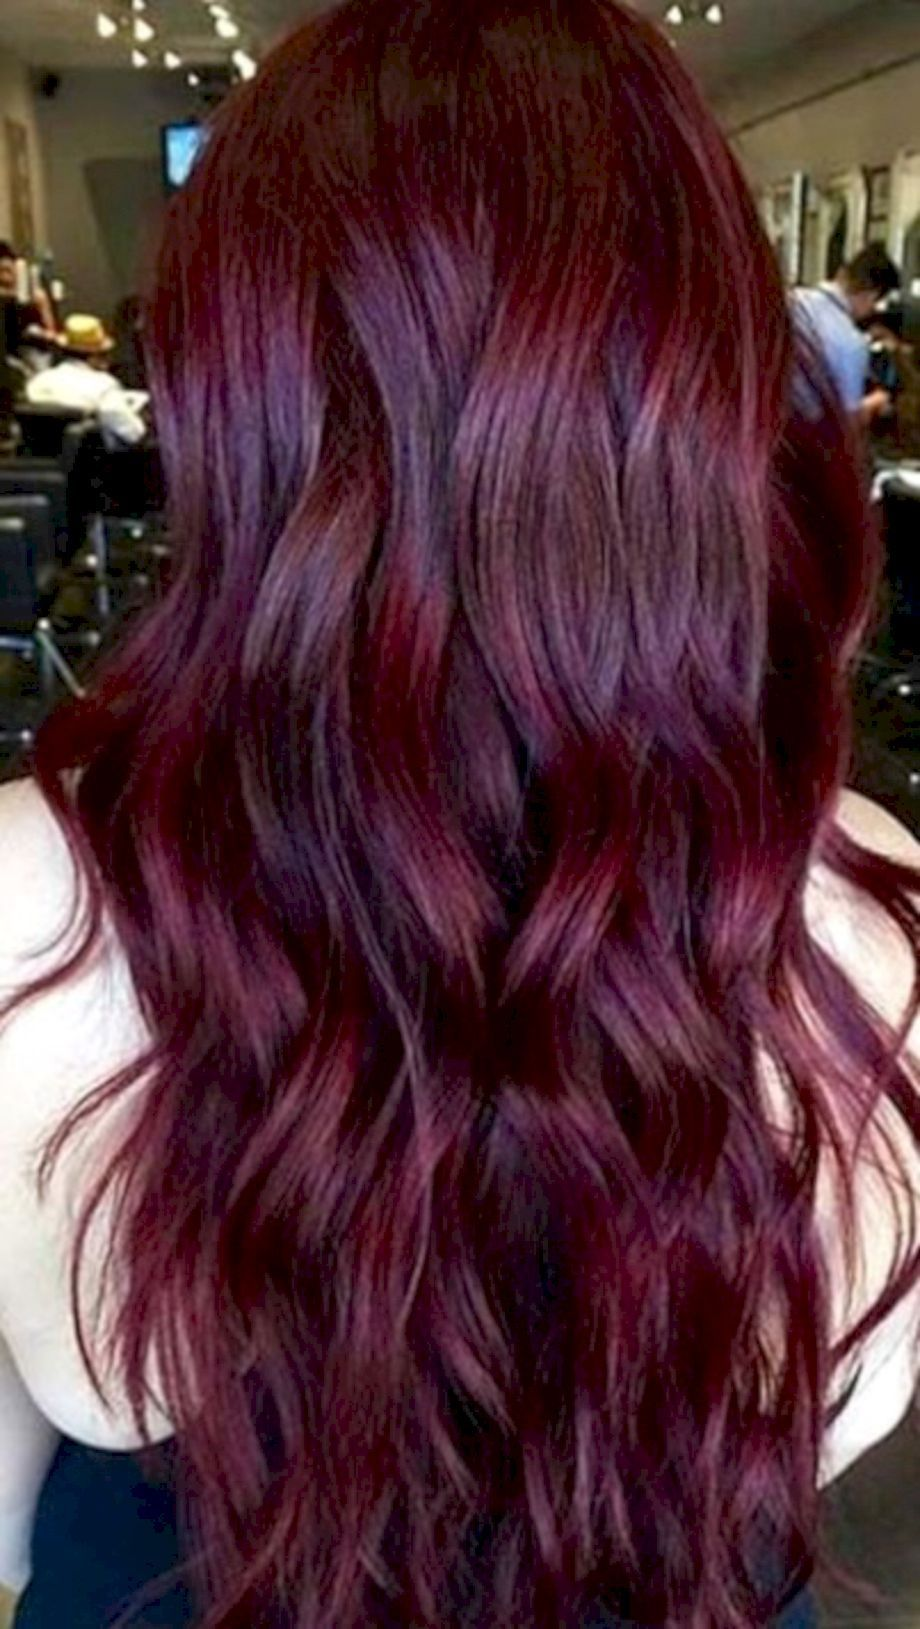 Hair color images - 74 Trending Fall Hair Color Inspiration 2017